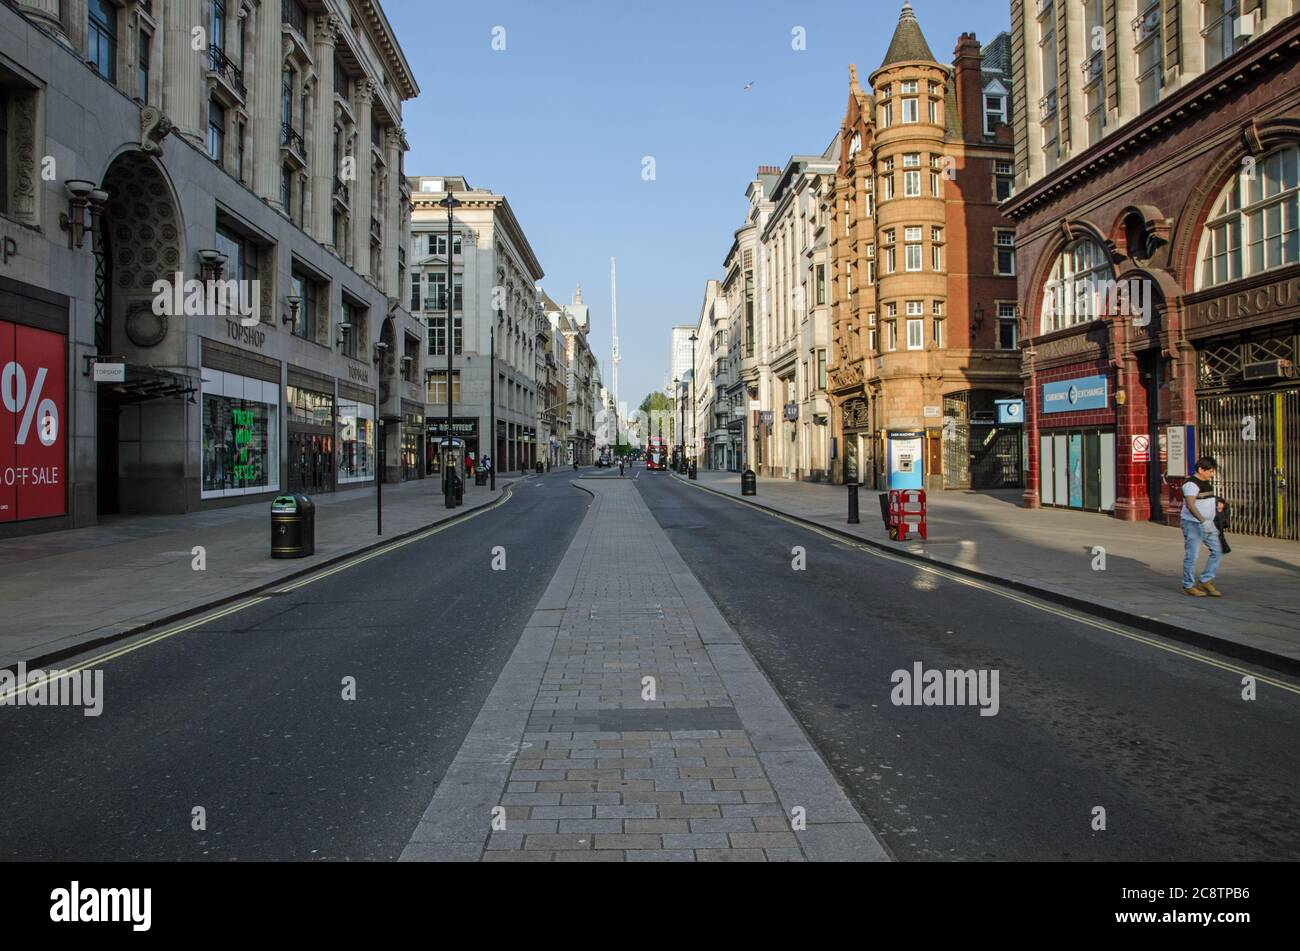 London, UK - April 24, 2020: An almost deserted Oxford Street on a sunny Spring afternoon during the COVID19 lockdown.  Only a few pedestrians and veh Stock Photo